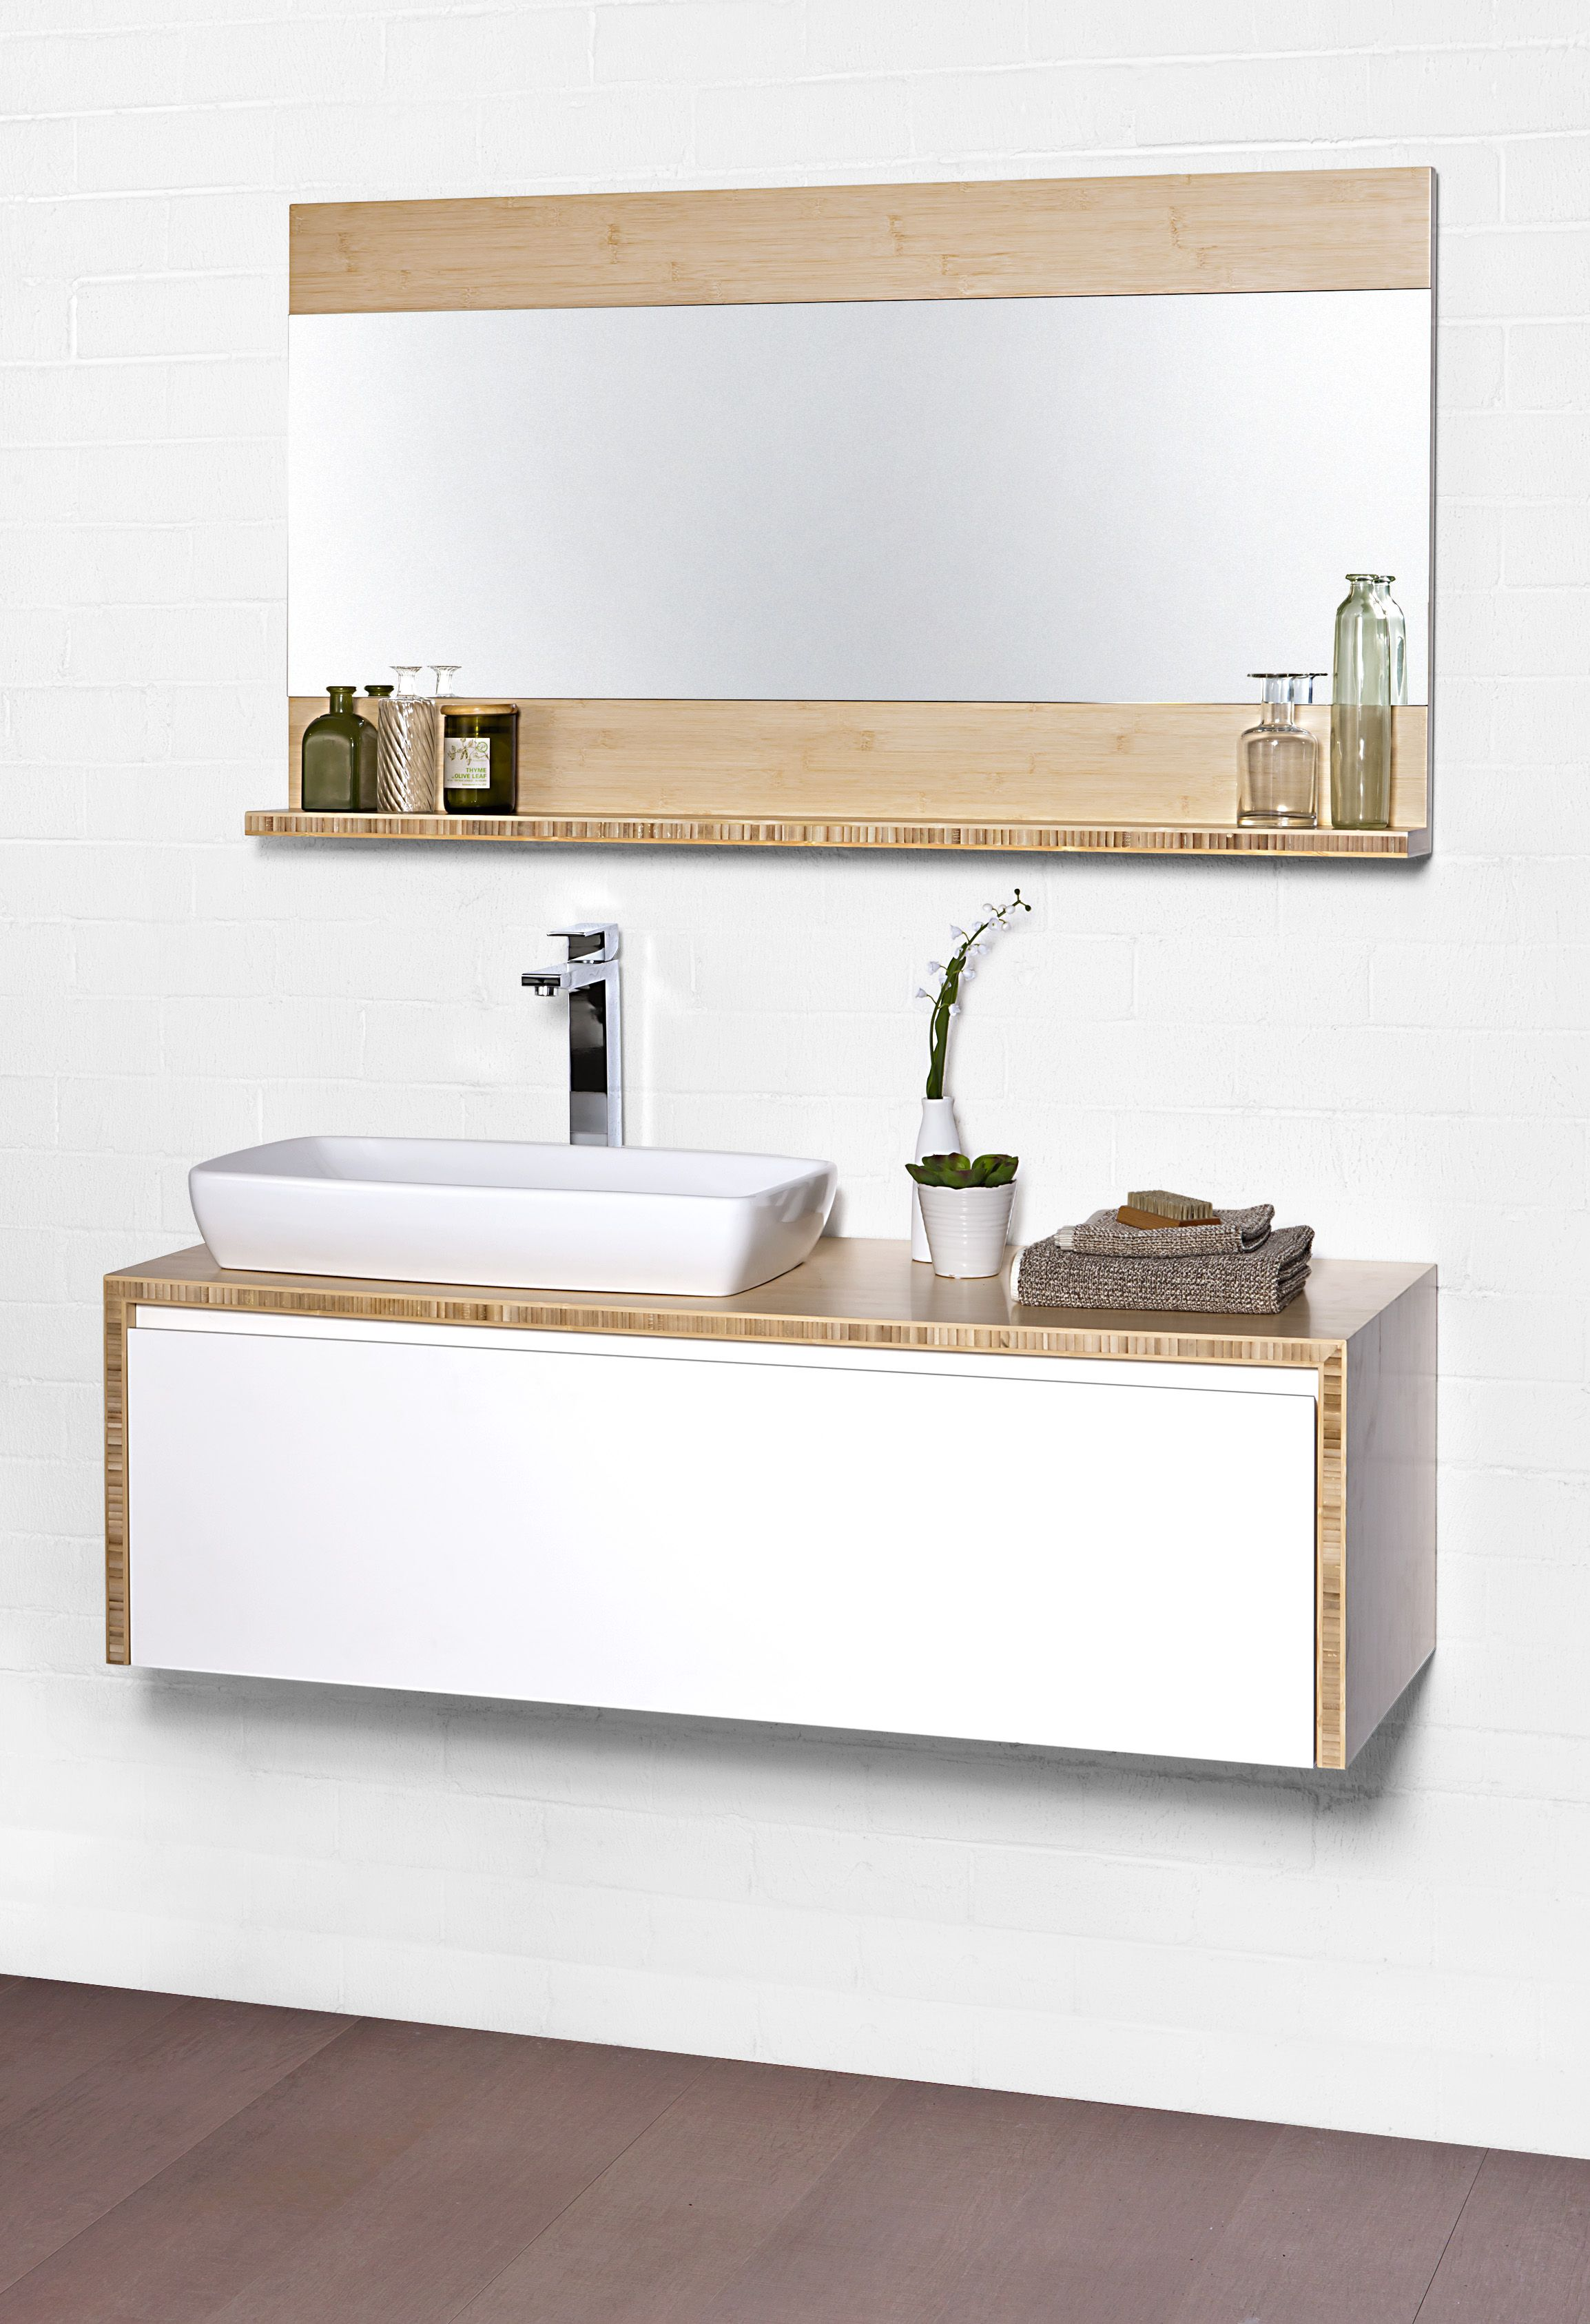 Sustainable and stylish bathroom furniture | Home Decor | Pinterest ...